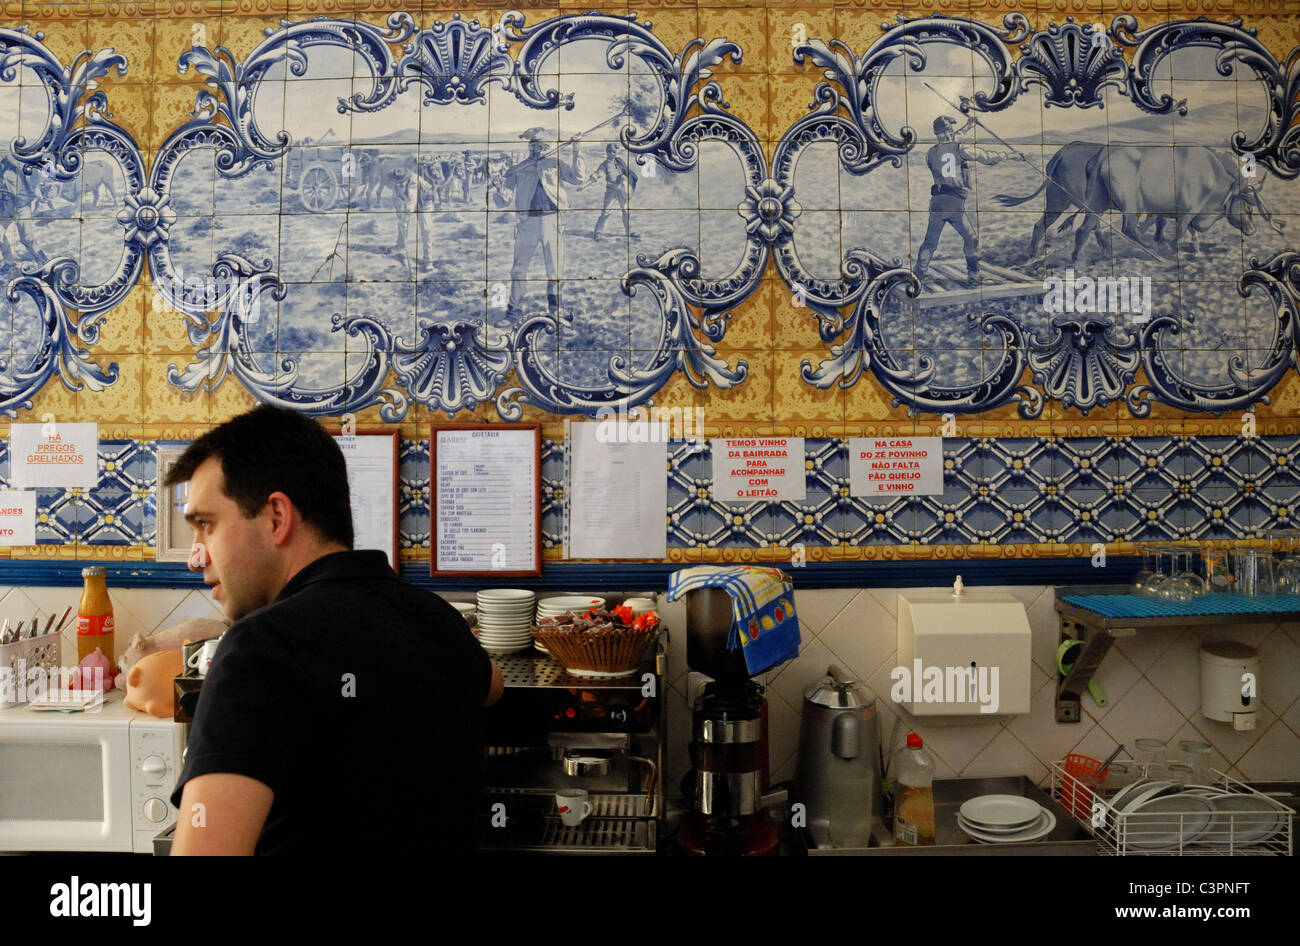 Old tiles (azulejos) in a cafe in lisbon. portugal. Europe. - Stock Image